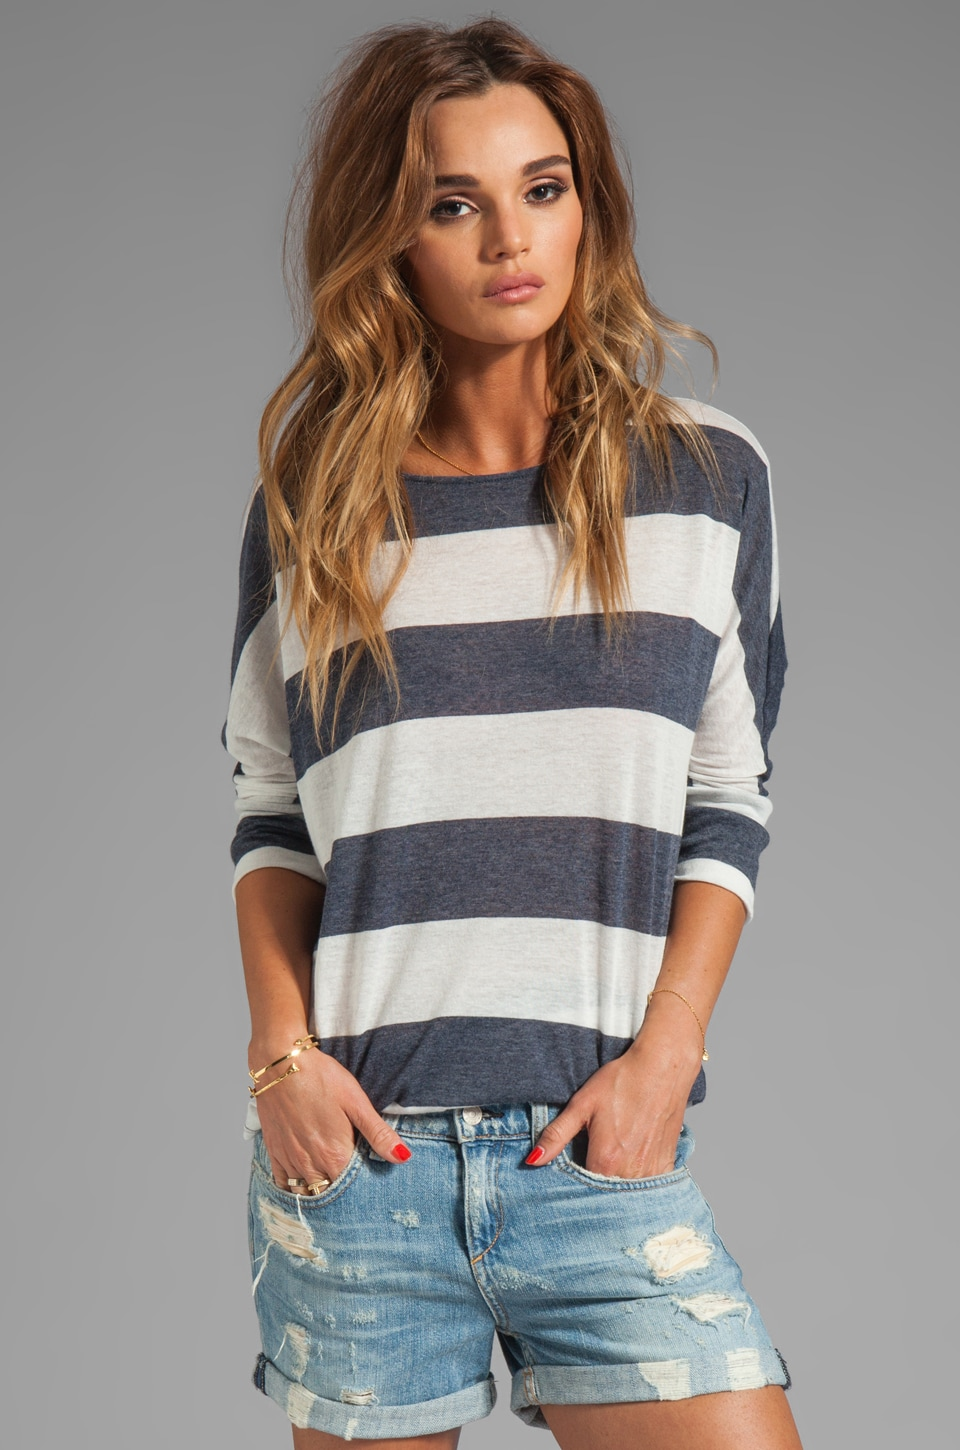 Soft Joie Sagittarius Stripe Top en Porcelain/Peacoat